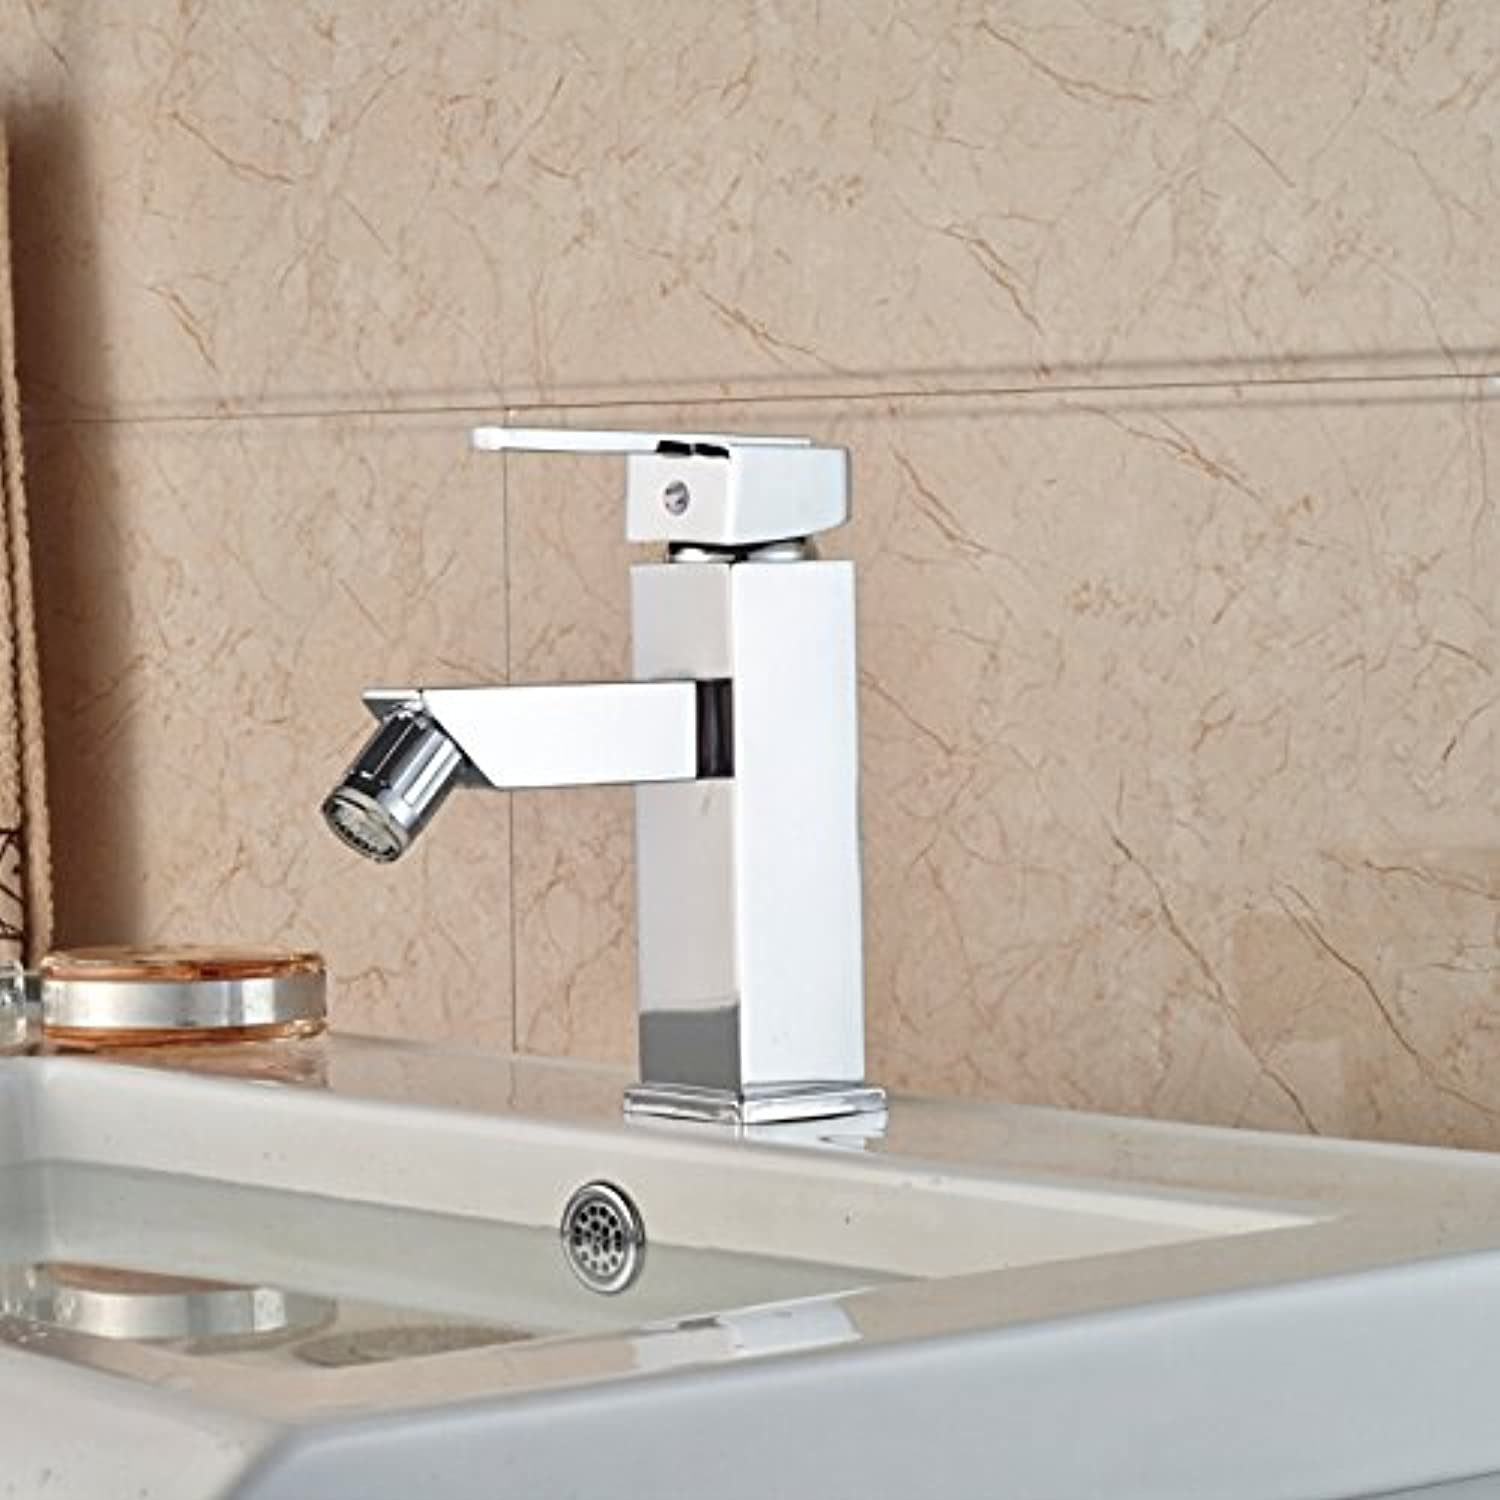 Tourmeler Led 3 color Changing Bathroom Bidet Faucet Deck Mount Single Handle Brass Washbasin Mixer Tap Chrome Finish